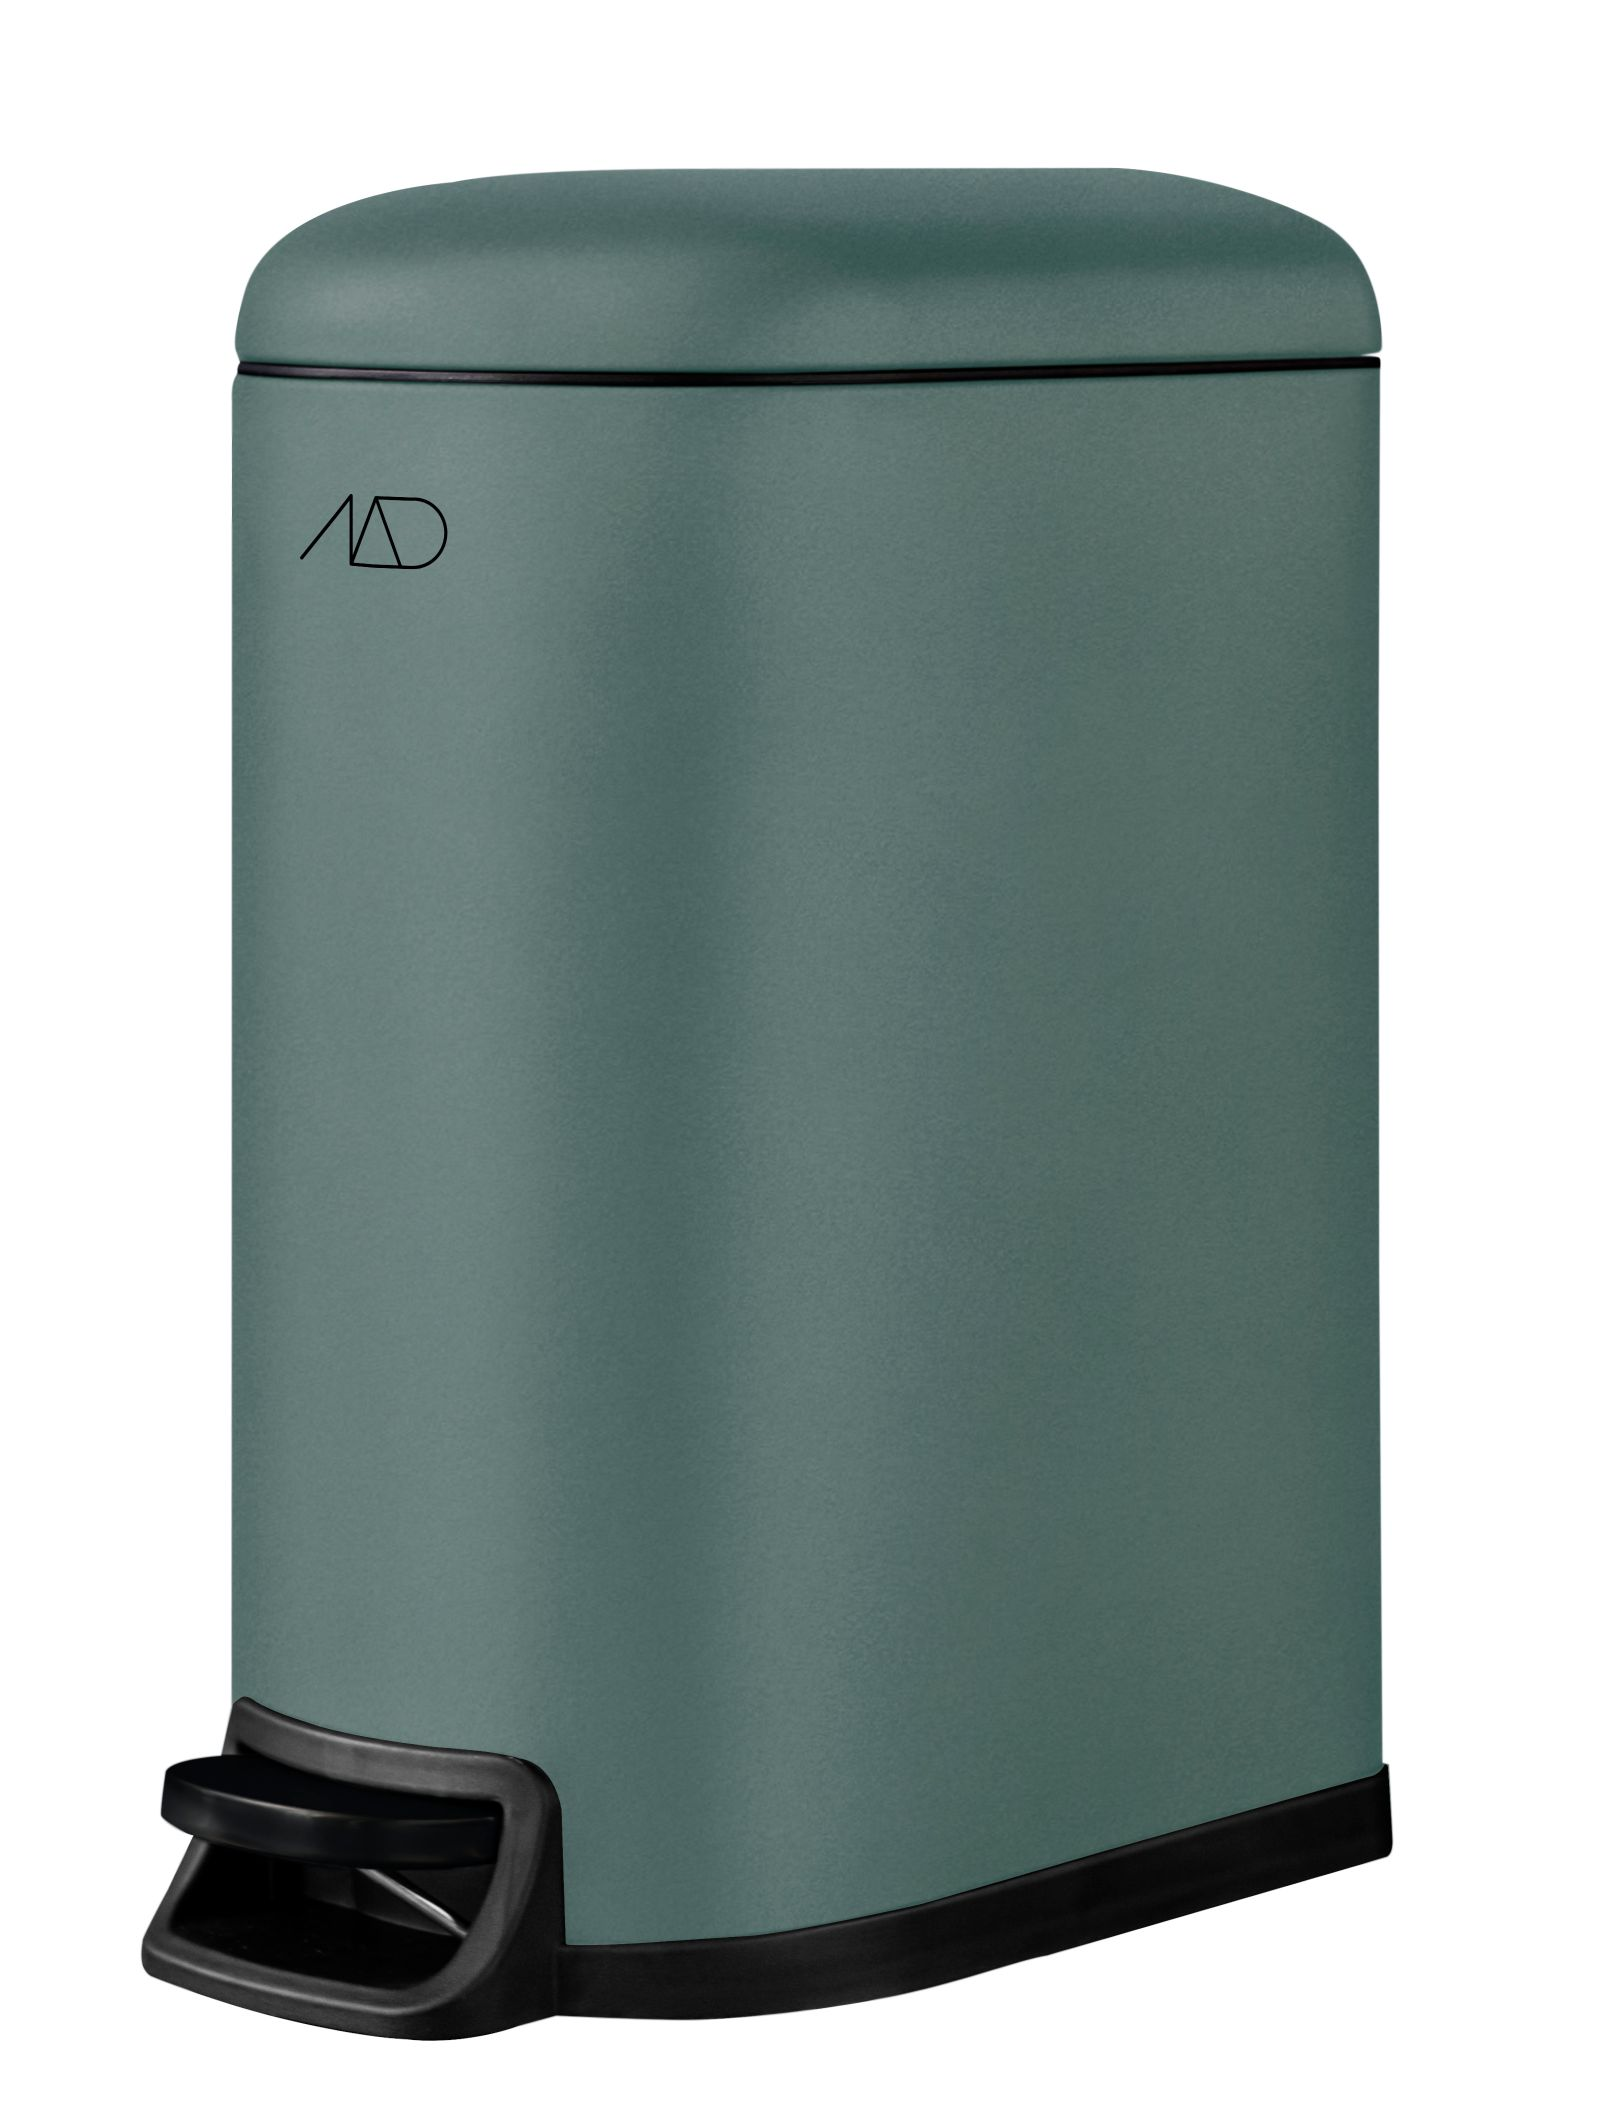 Mette Ditmer Walther pedalspand, 10 liter